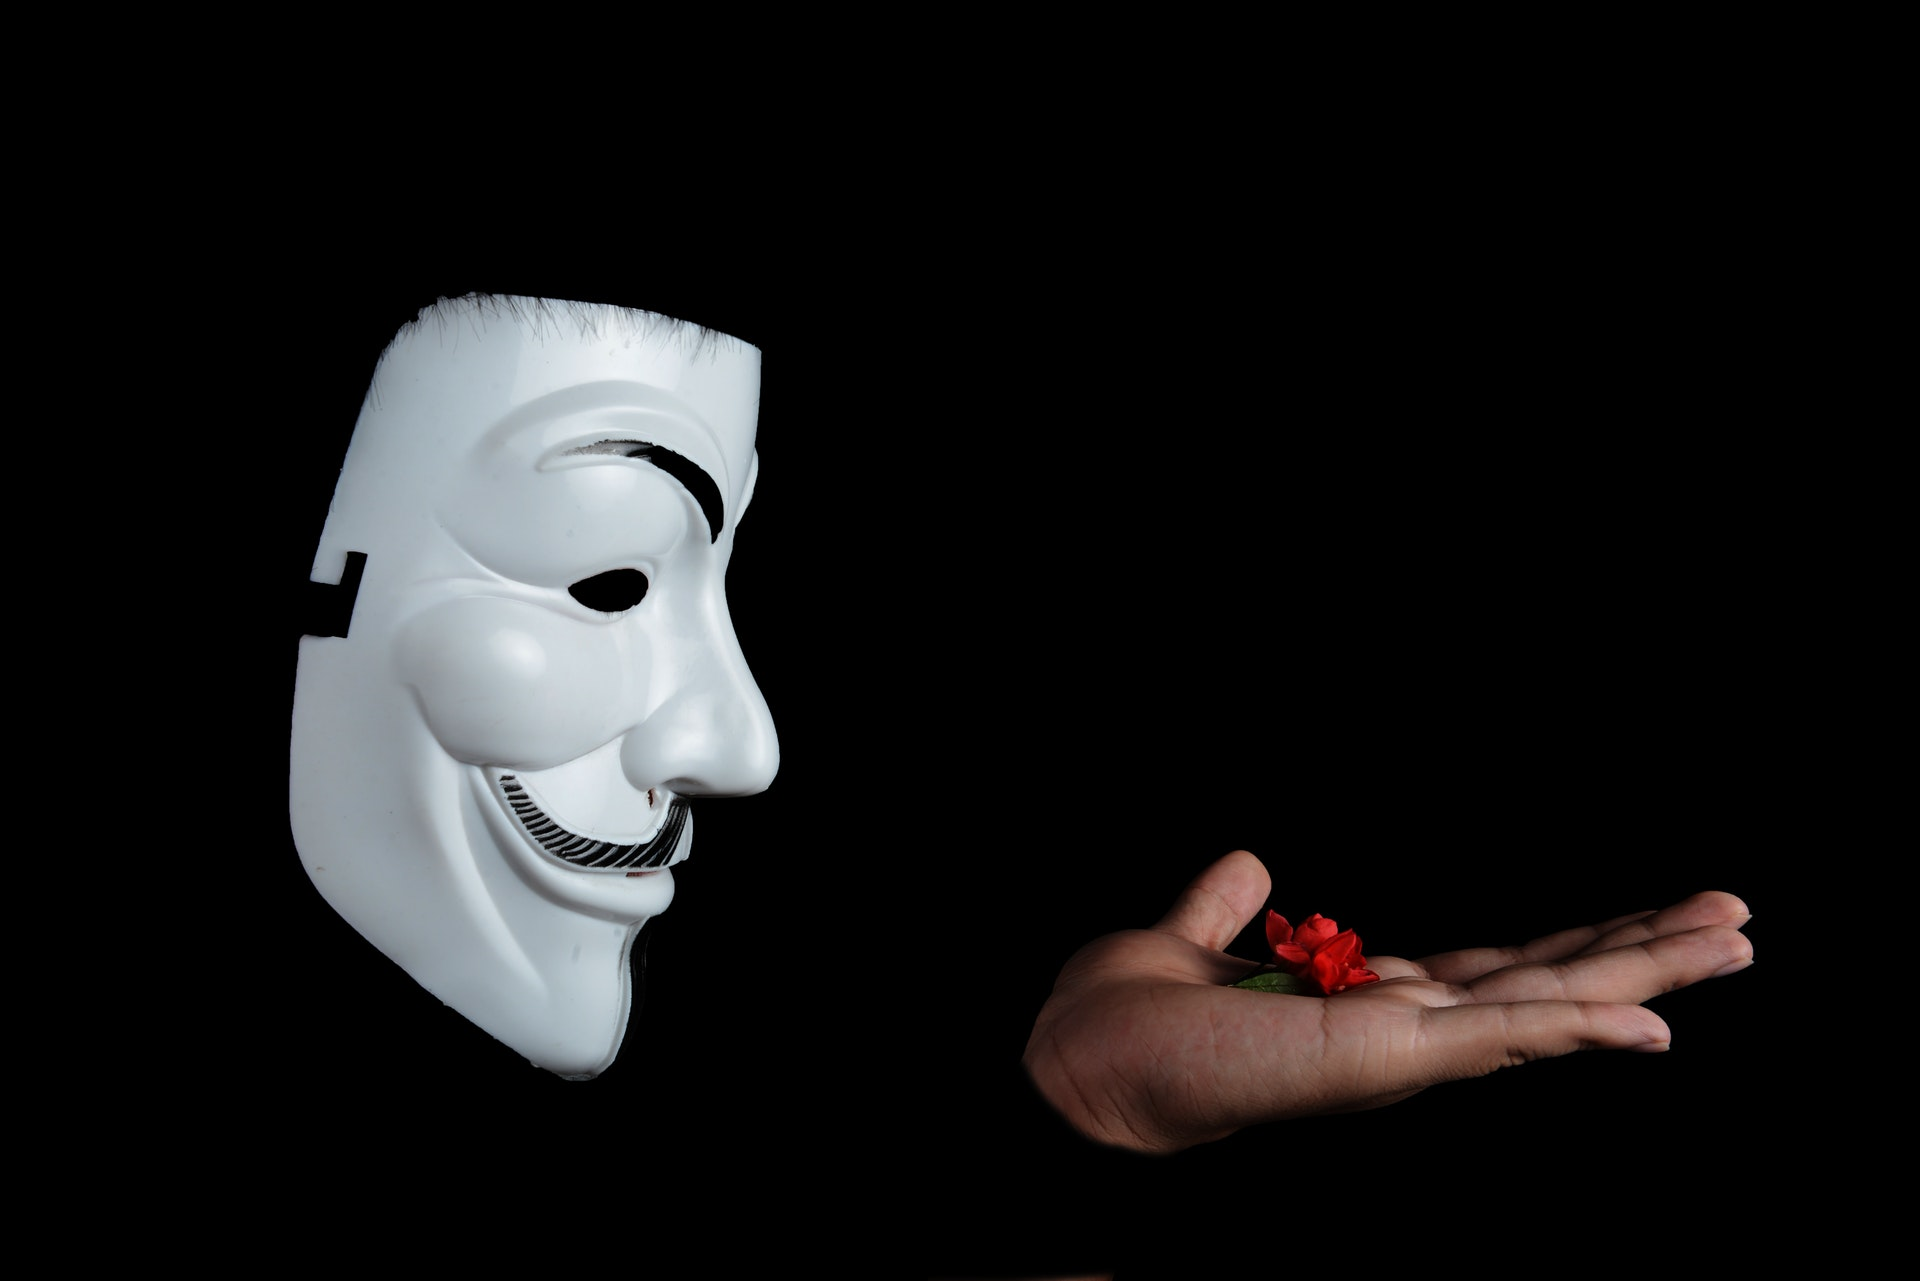 guy-fawkes-mask-with-red-flower-on-top-on-hand